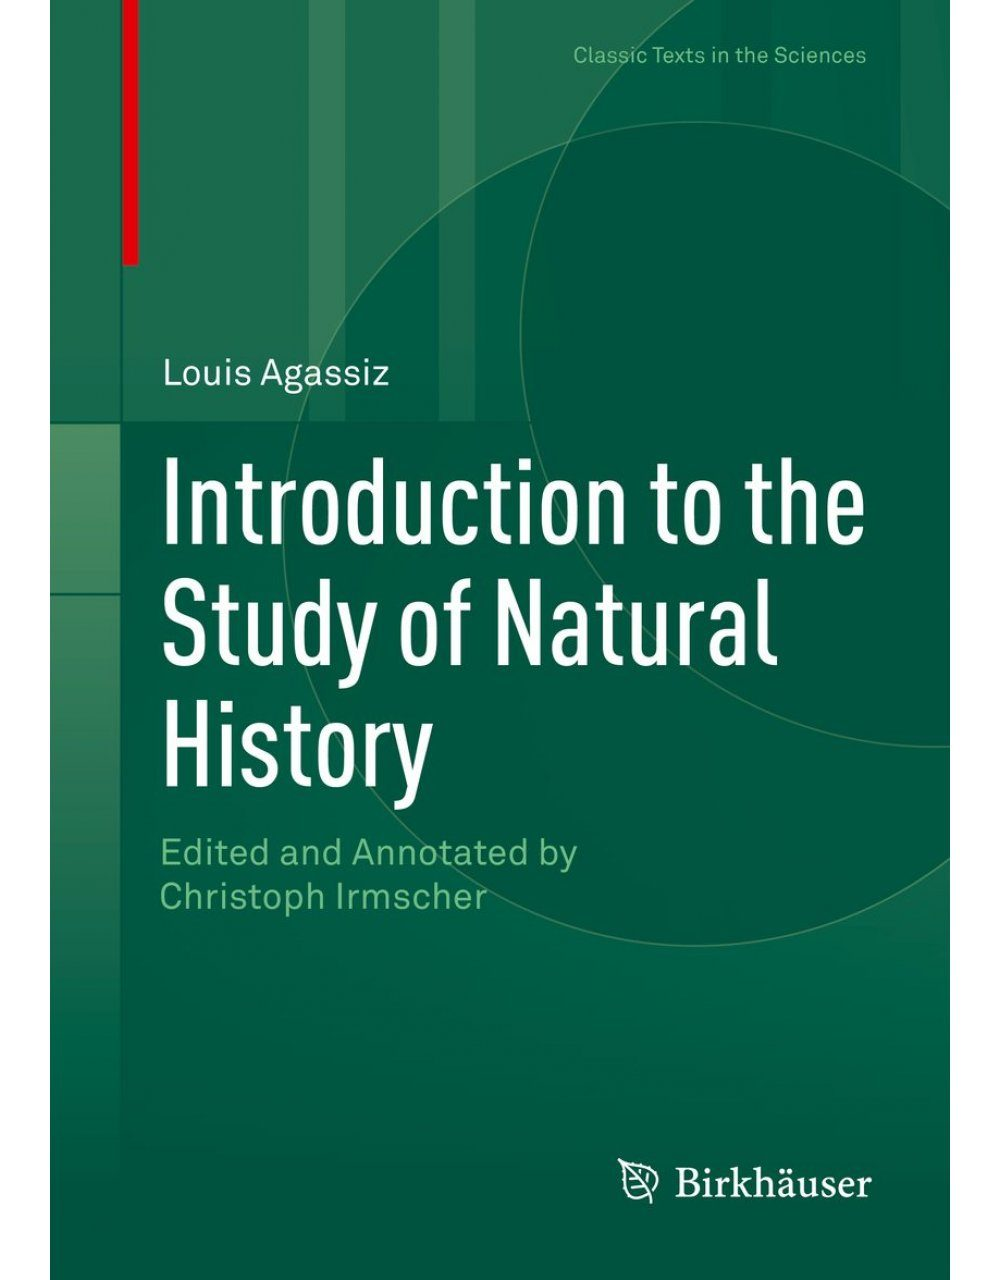 Introduction to the Study of Natural History